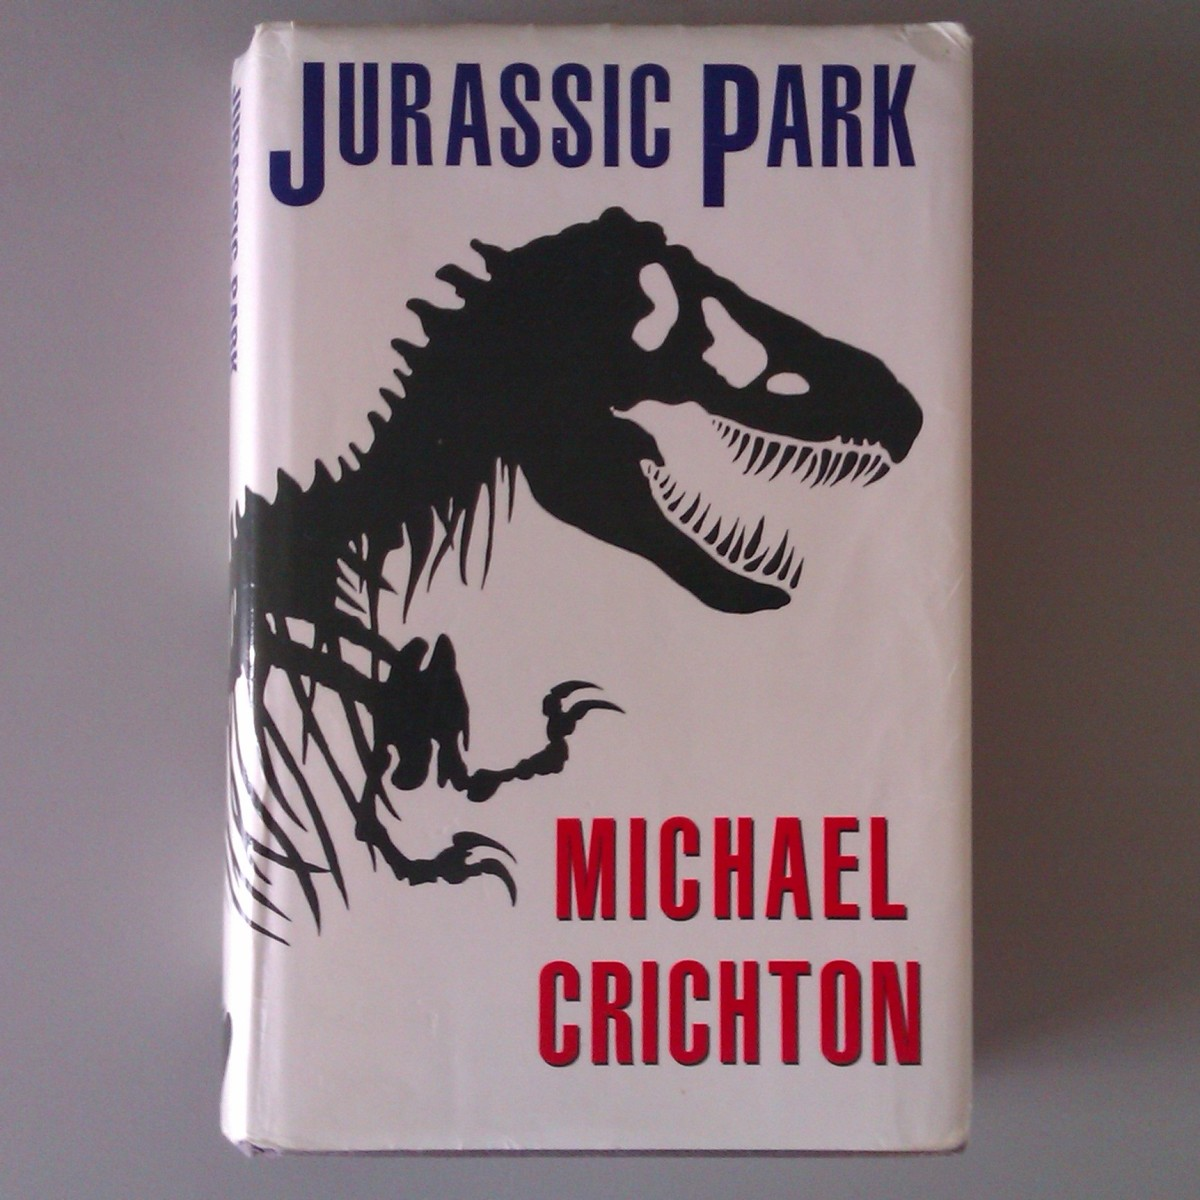 Jurassic Park Book Review